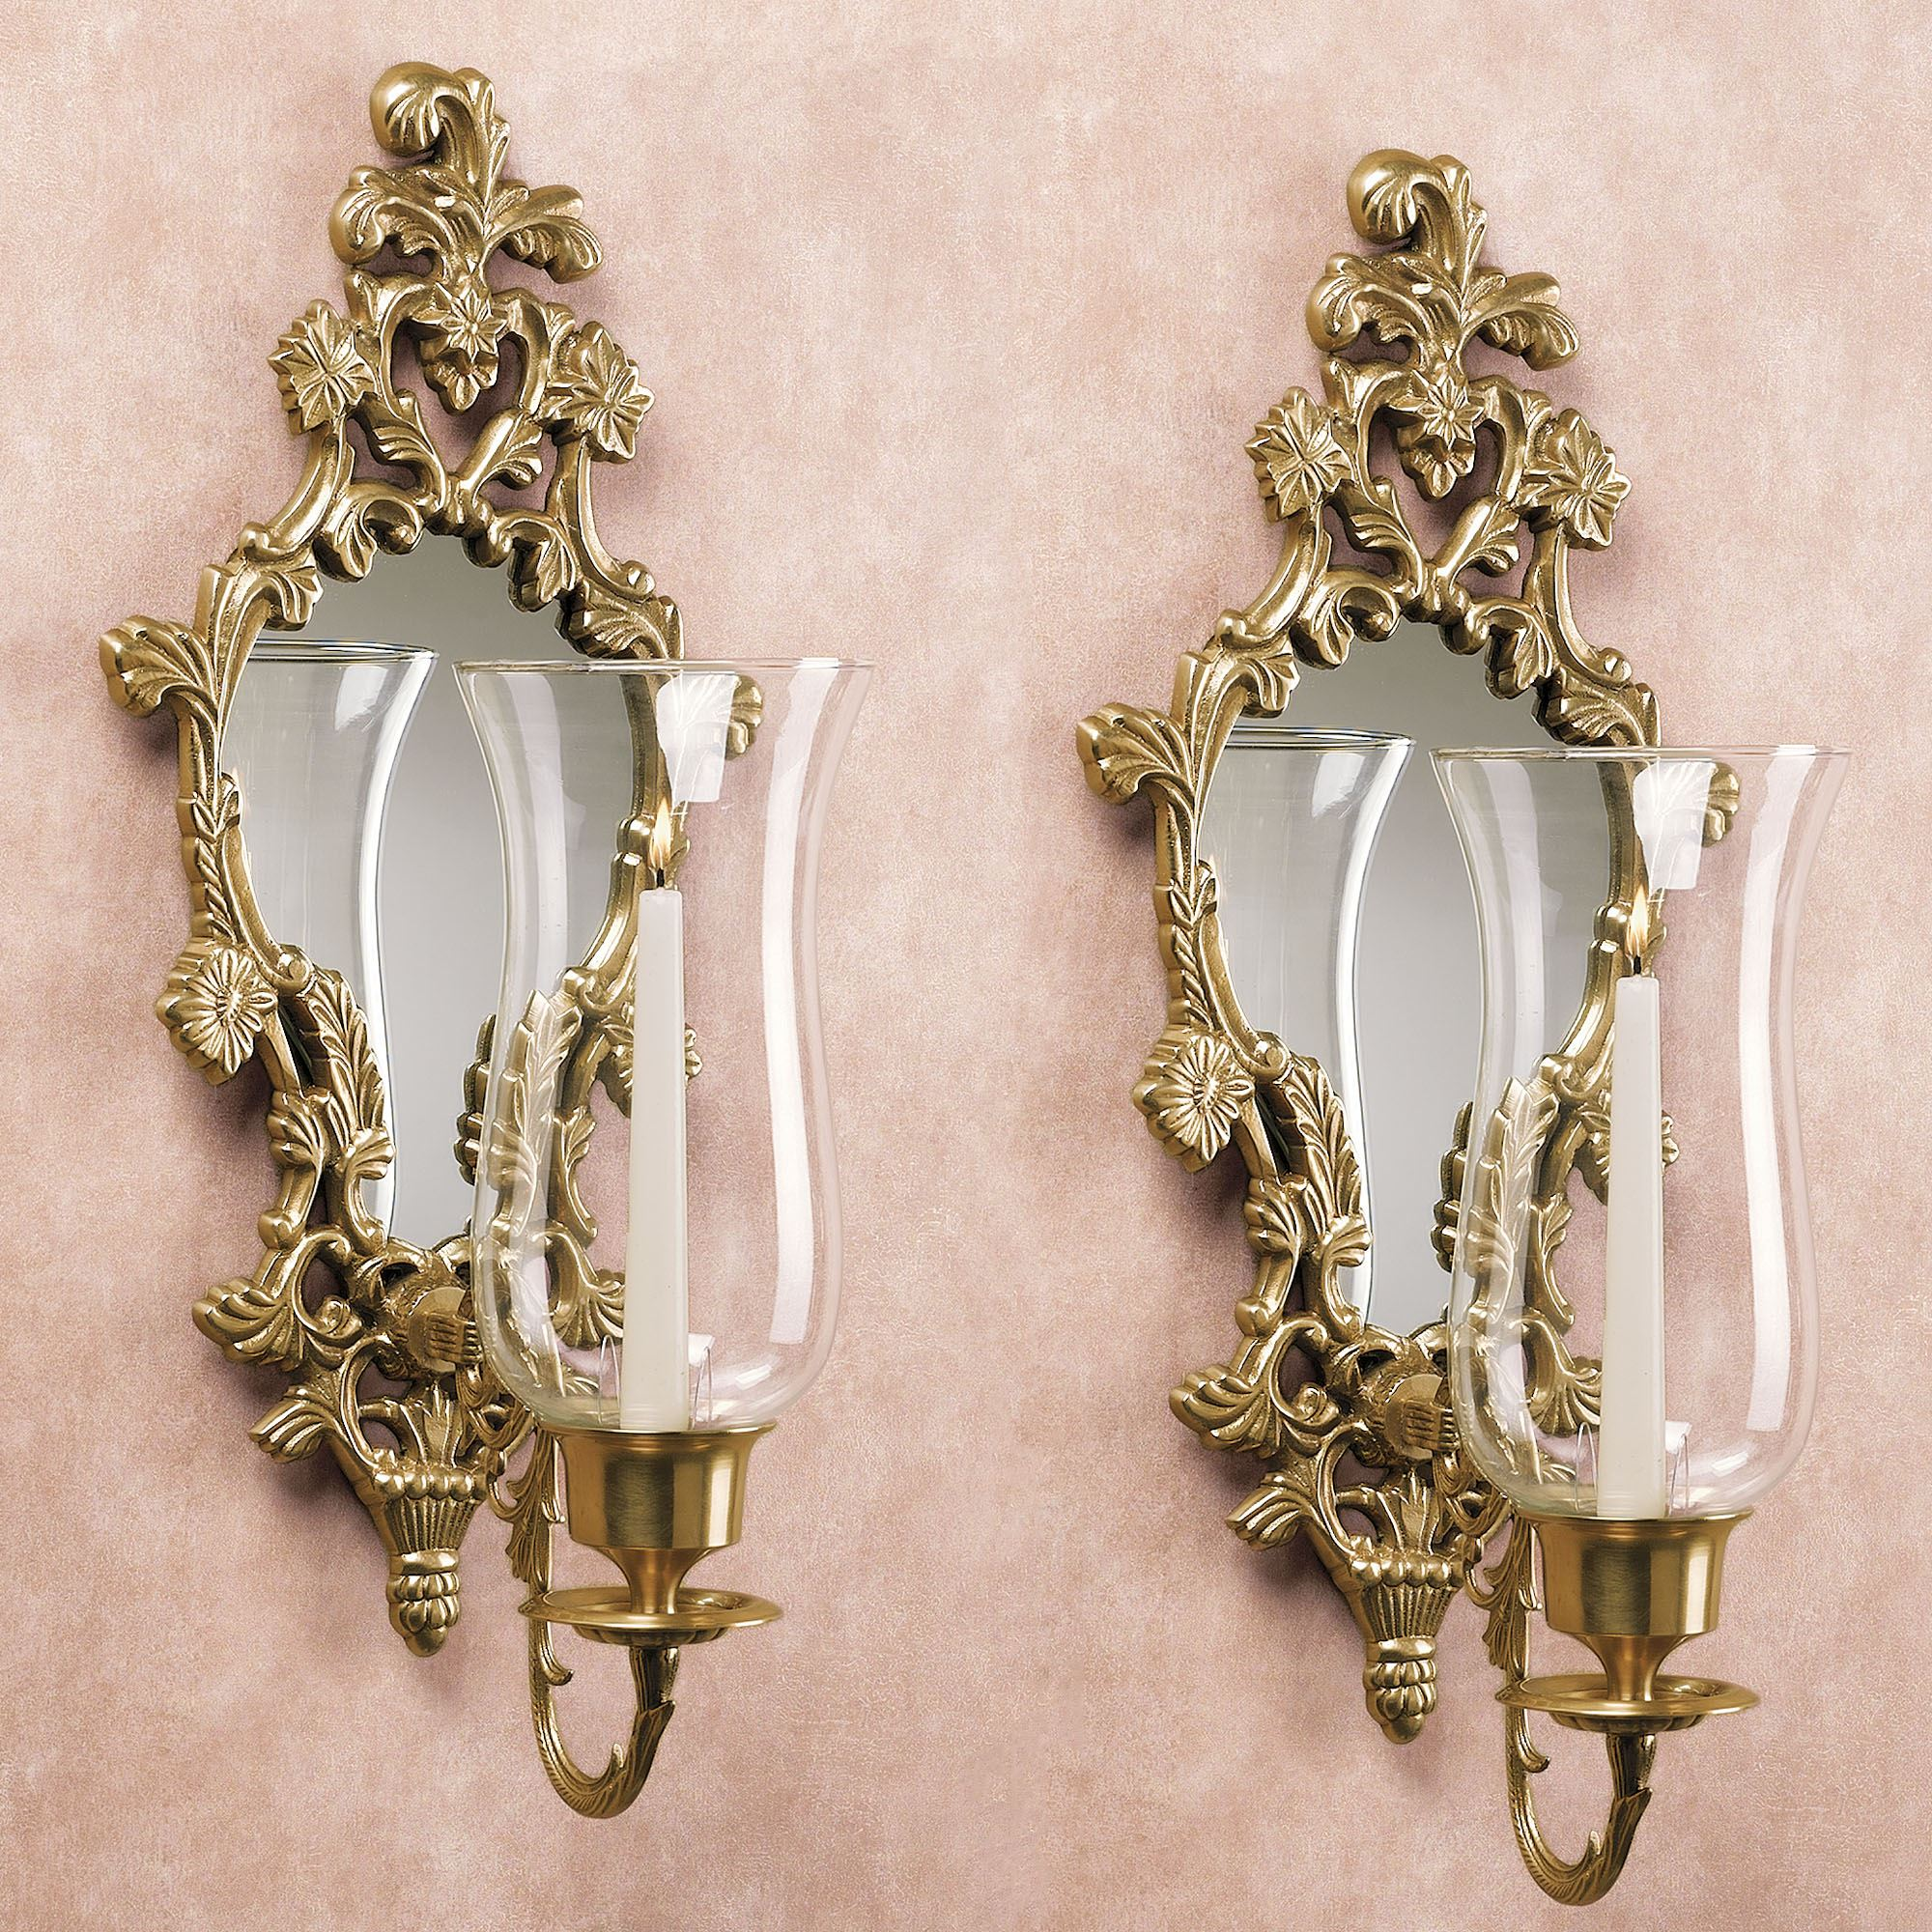 Athea Mirrored Brass Wall Sconce Pair